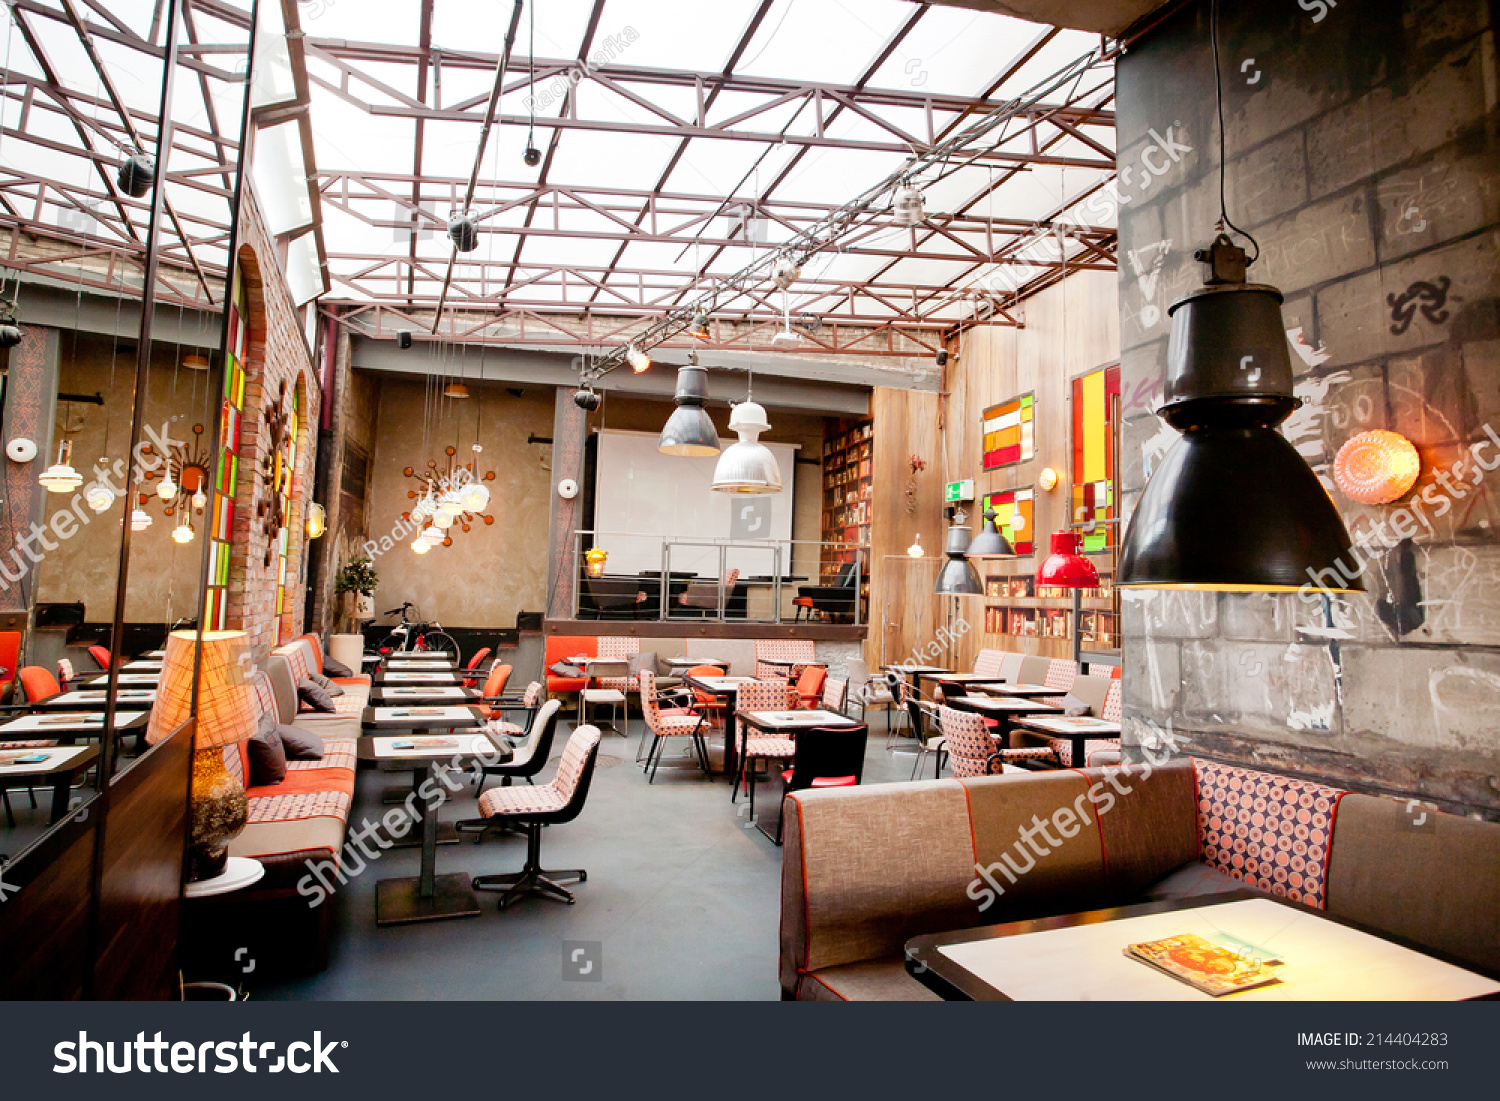 stock-photo-krakow-poland-jul-interior-design-of-a-popular-restaurant ...